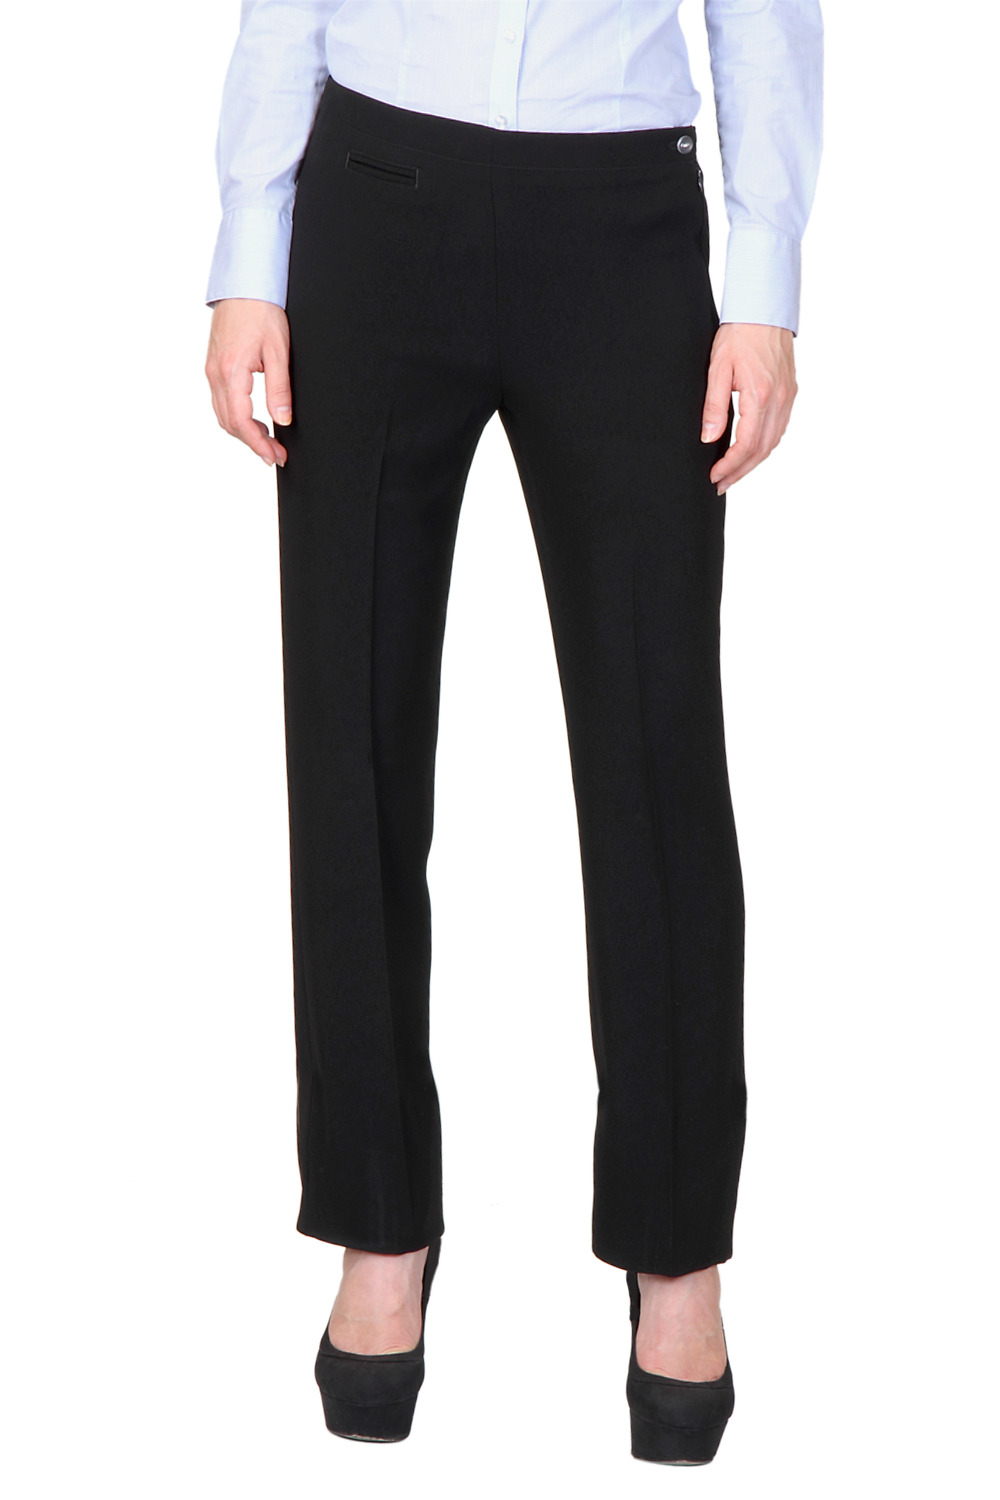 519a10a833ba42 Solly Trousers & Leggings, Allen Solly Black Trousers for Women at  Allensolly.com